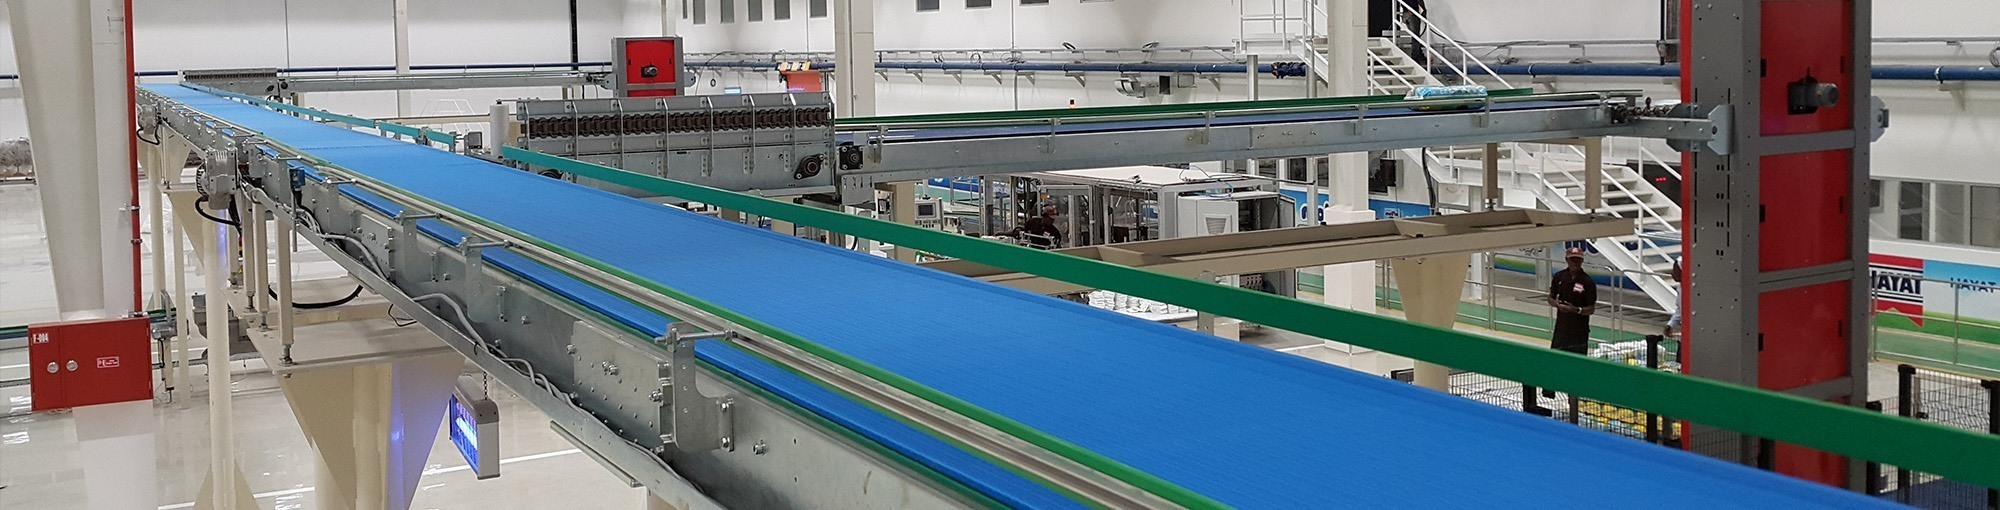 Conveyor and Transfer Systems